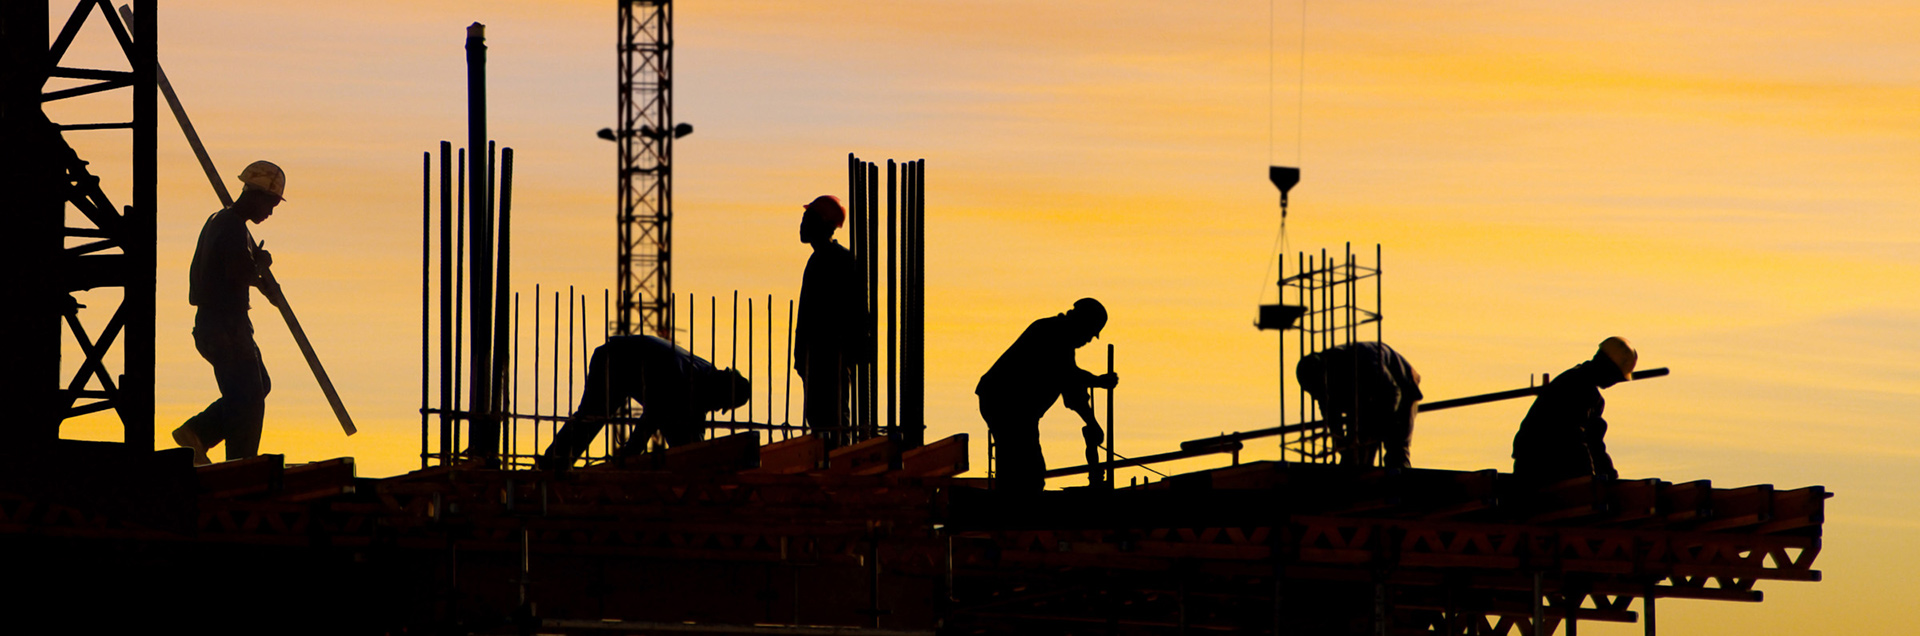 Workers working near sunset